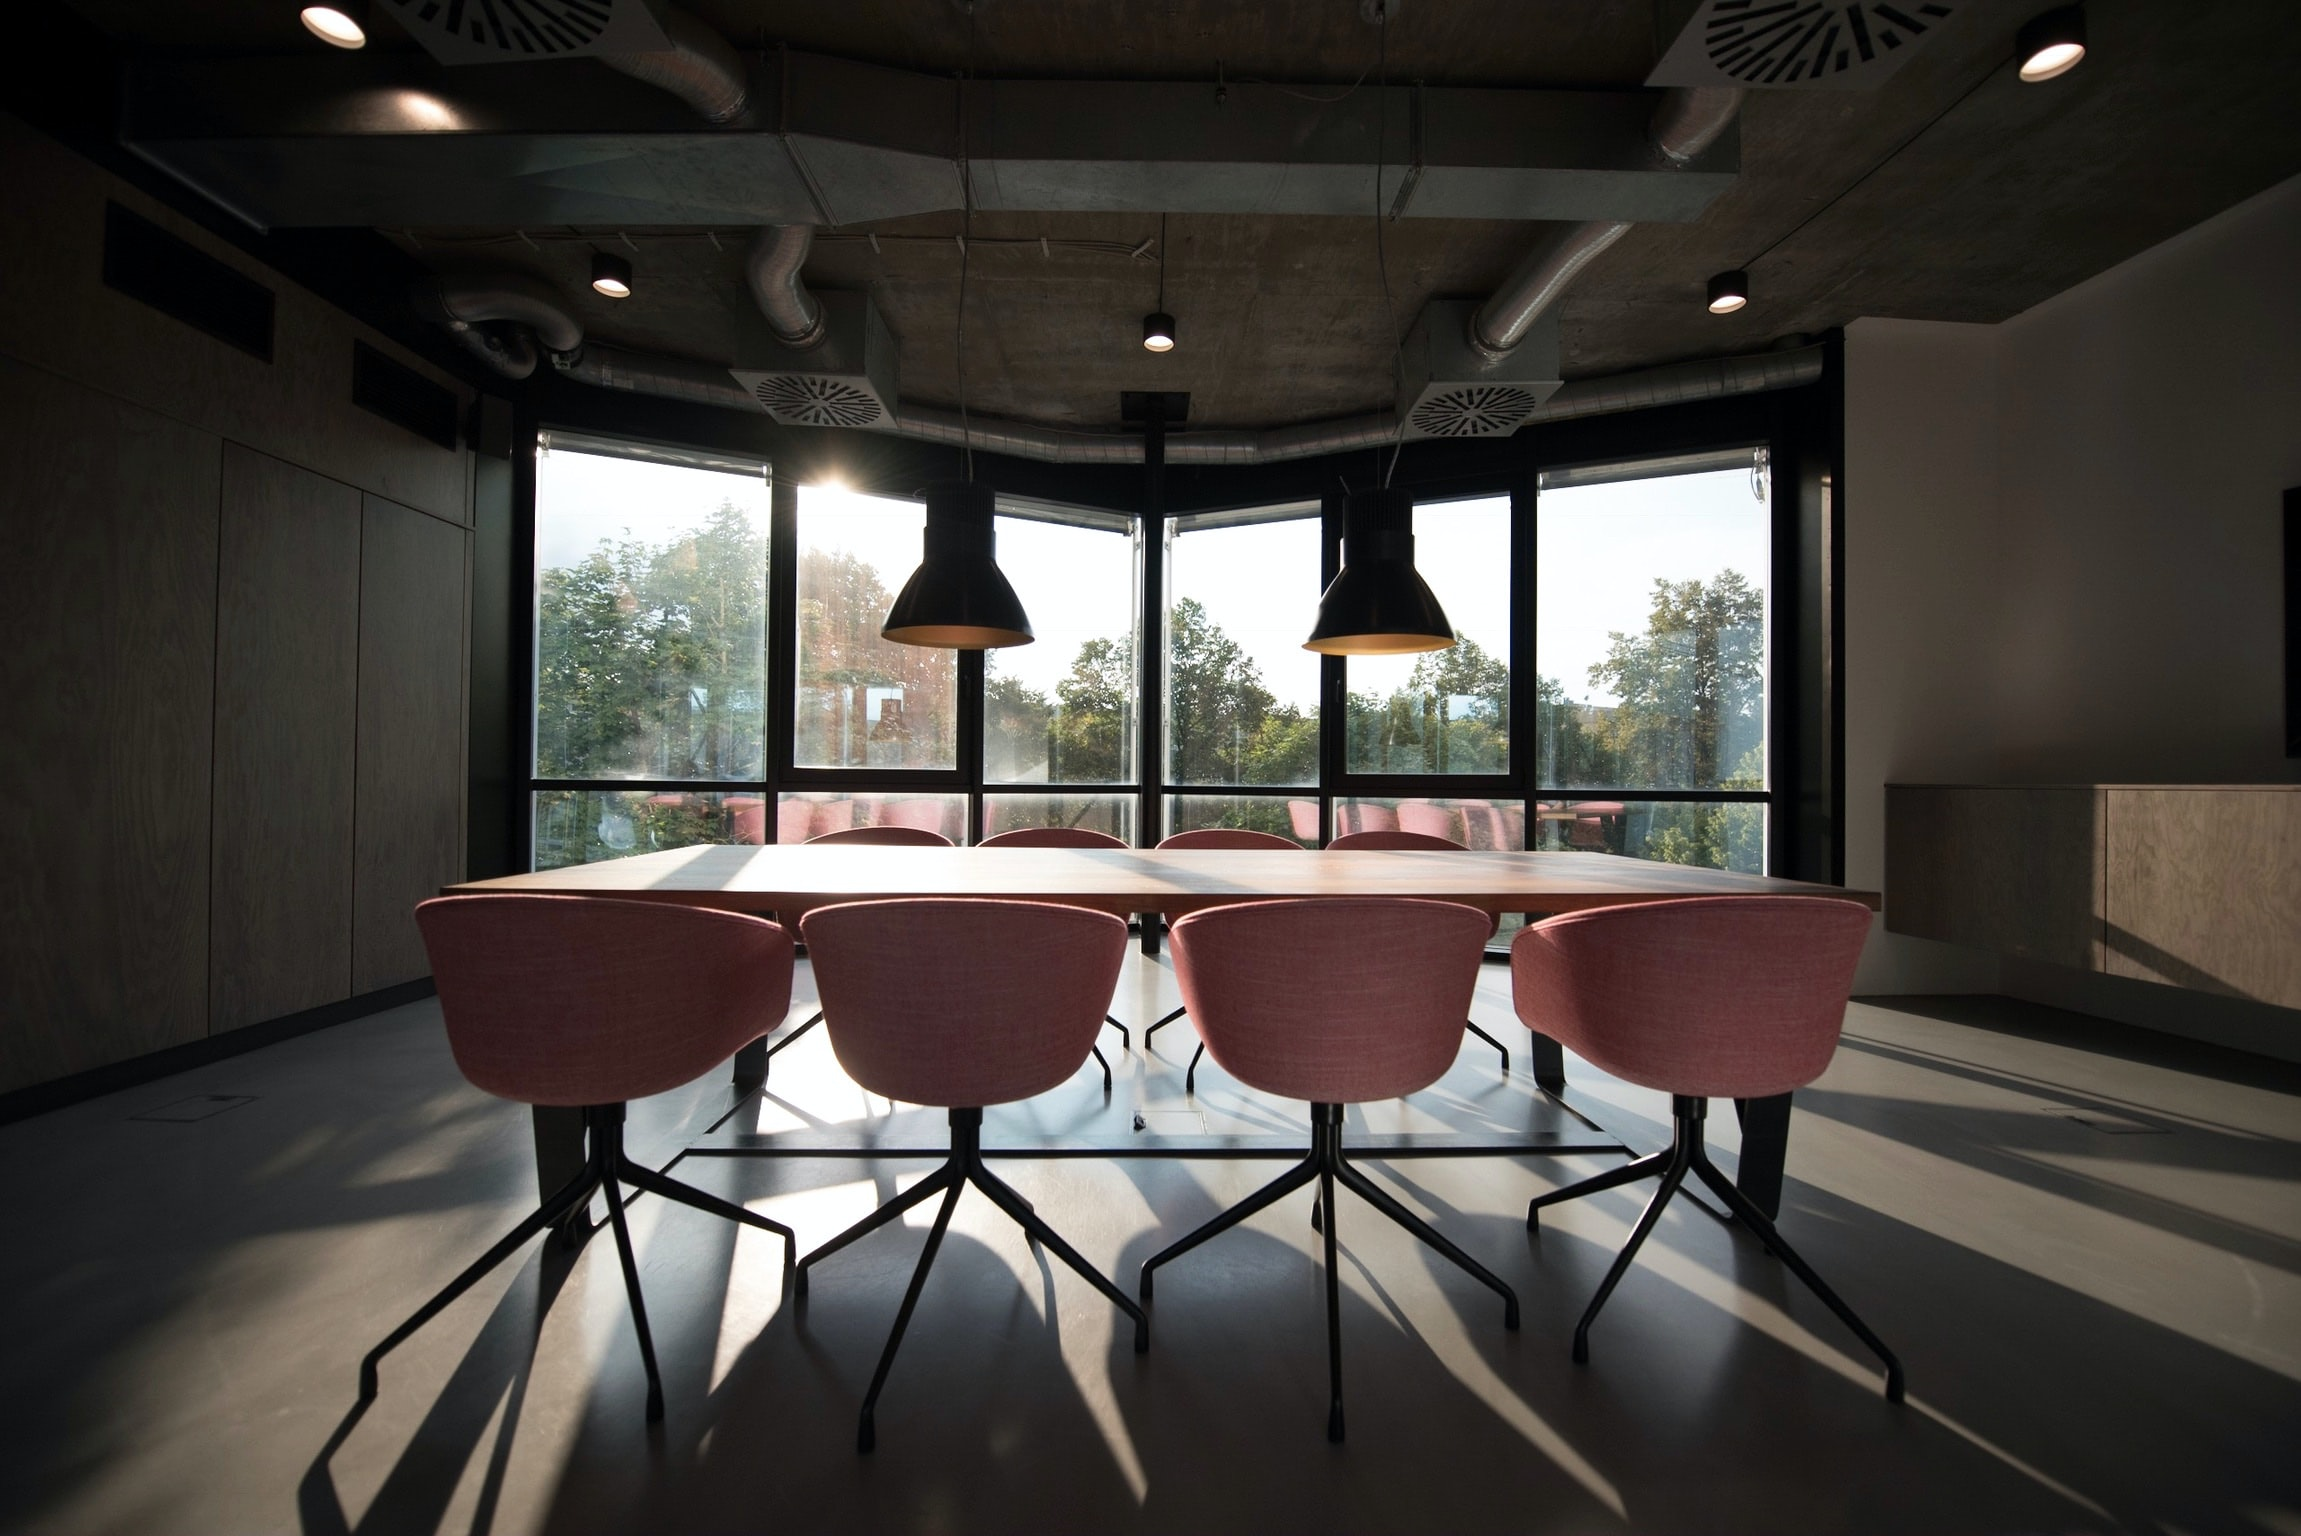 Pink Dining Table With Four Chairs Inside Room Photo Free Meeting Room Image On Unsplash